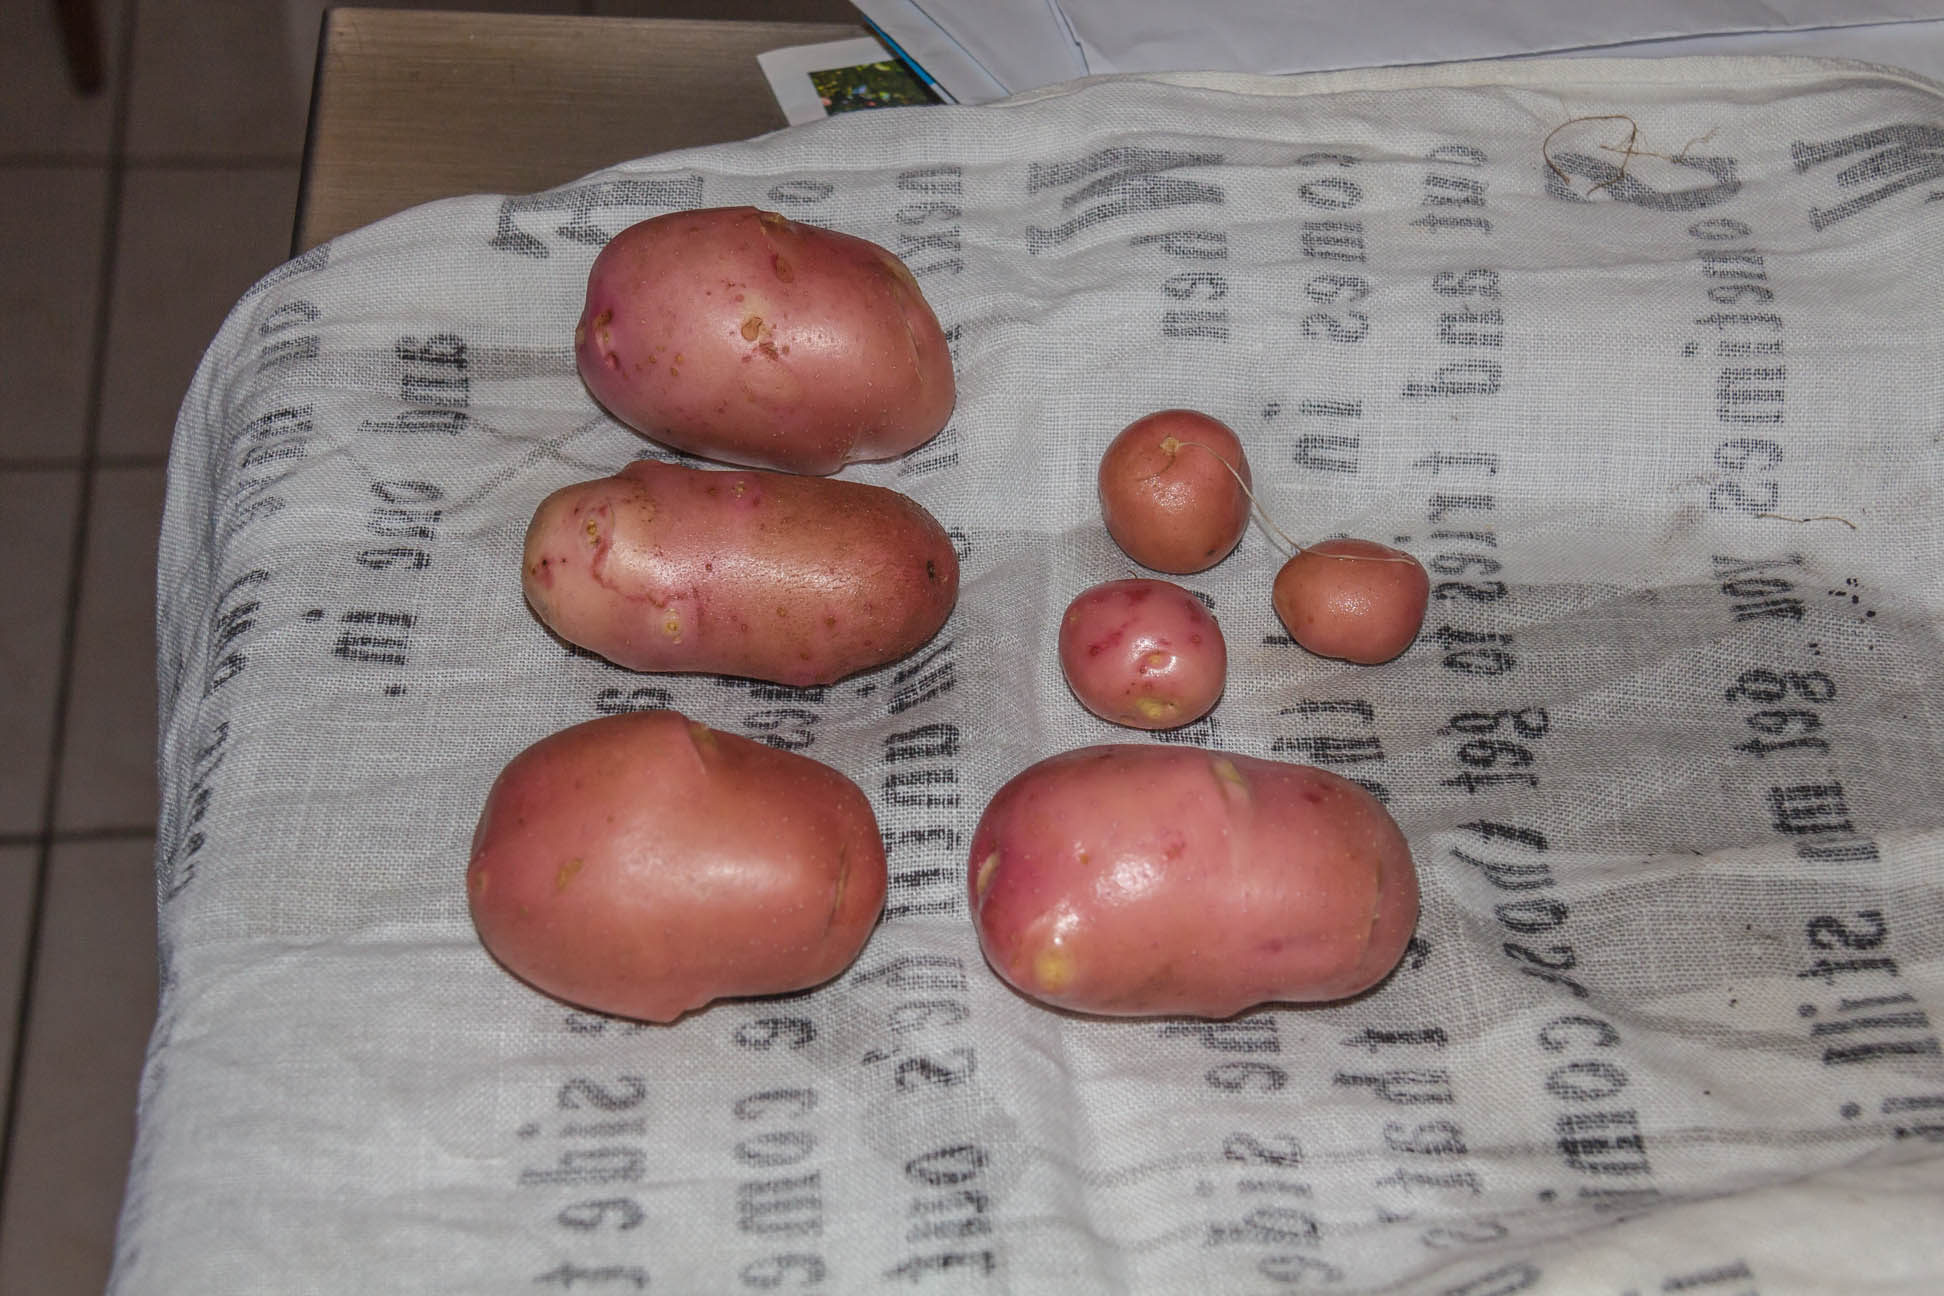 4 medium potatoes and 3 small potatoes spud